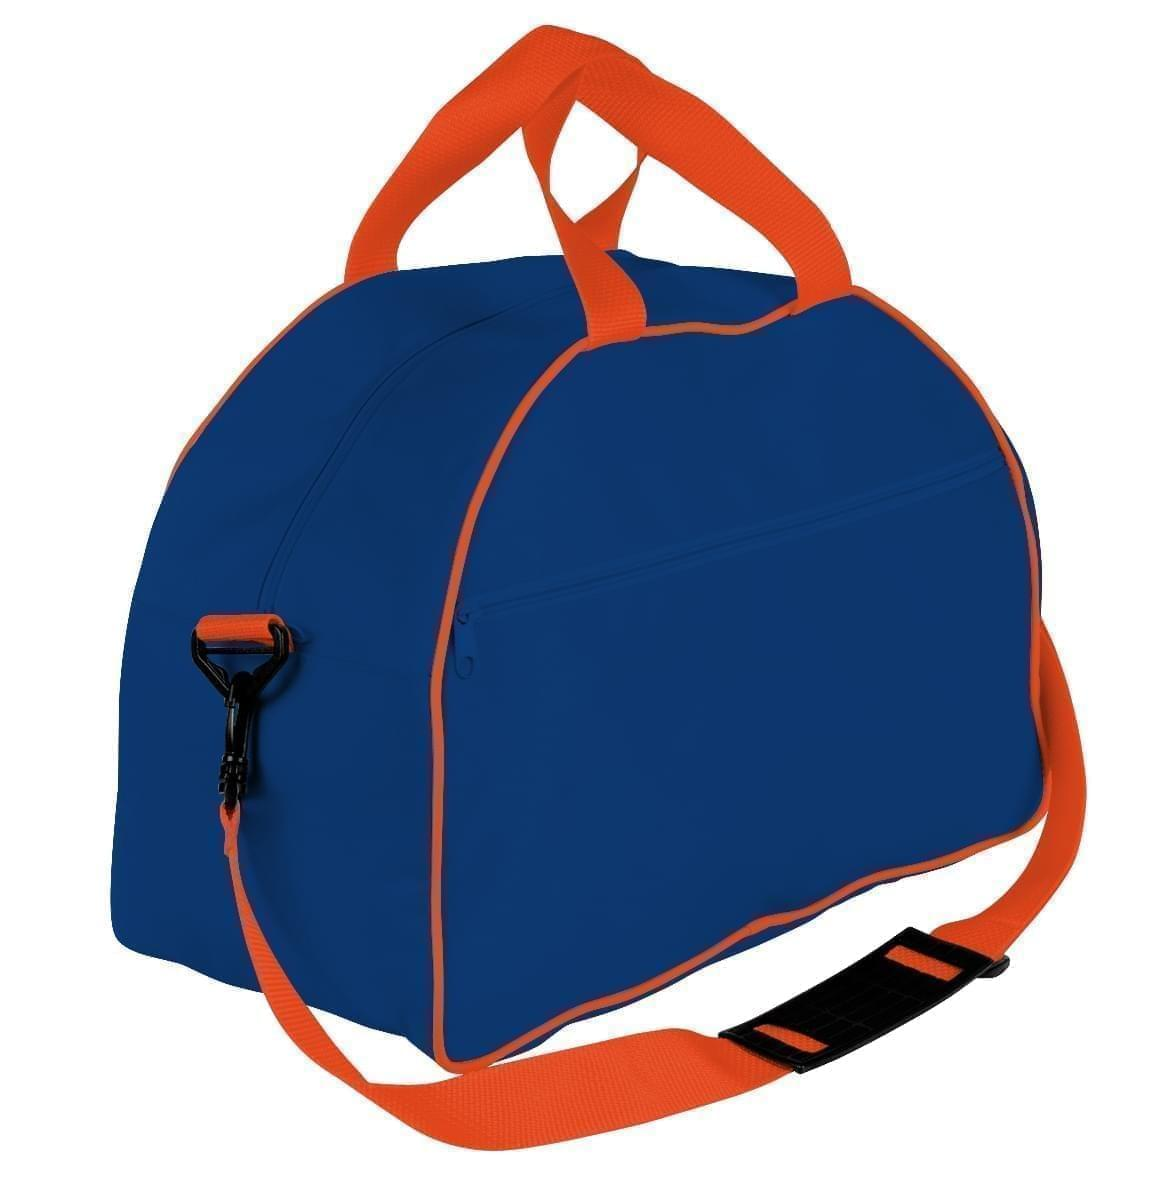 USA Made Nylon Poly Weekender Duffel Bags, Royal Blue-Orange, 6PKV32JA00